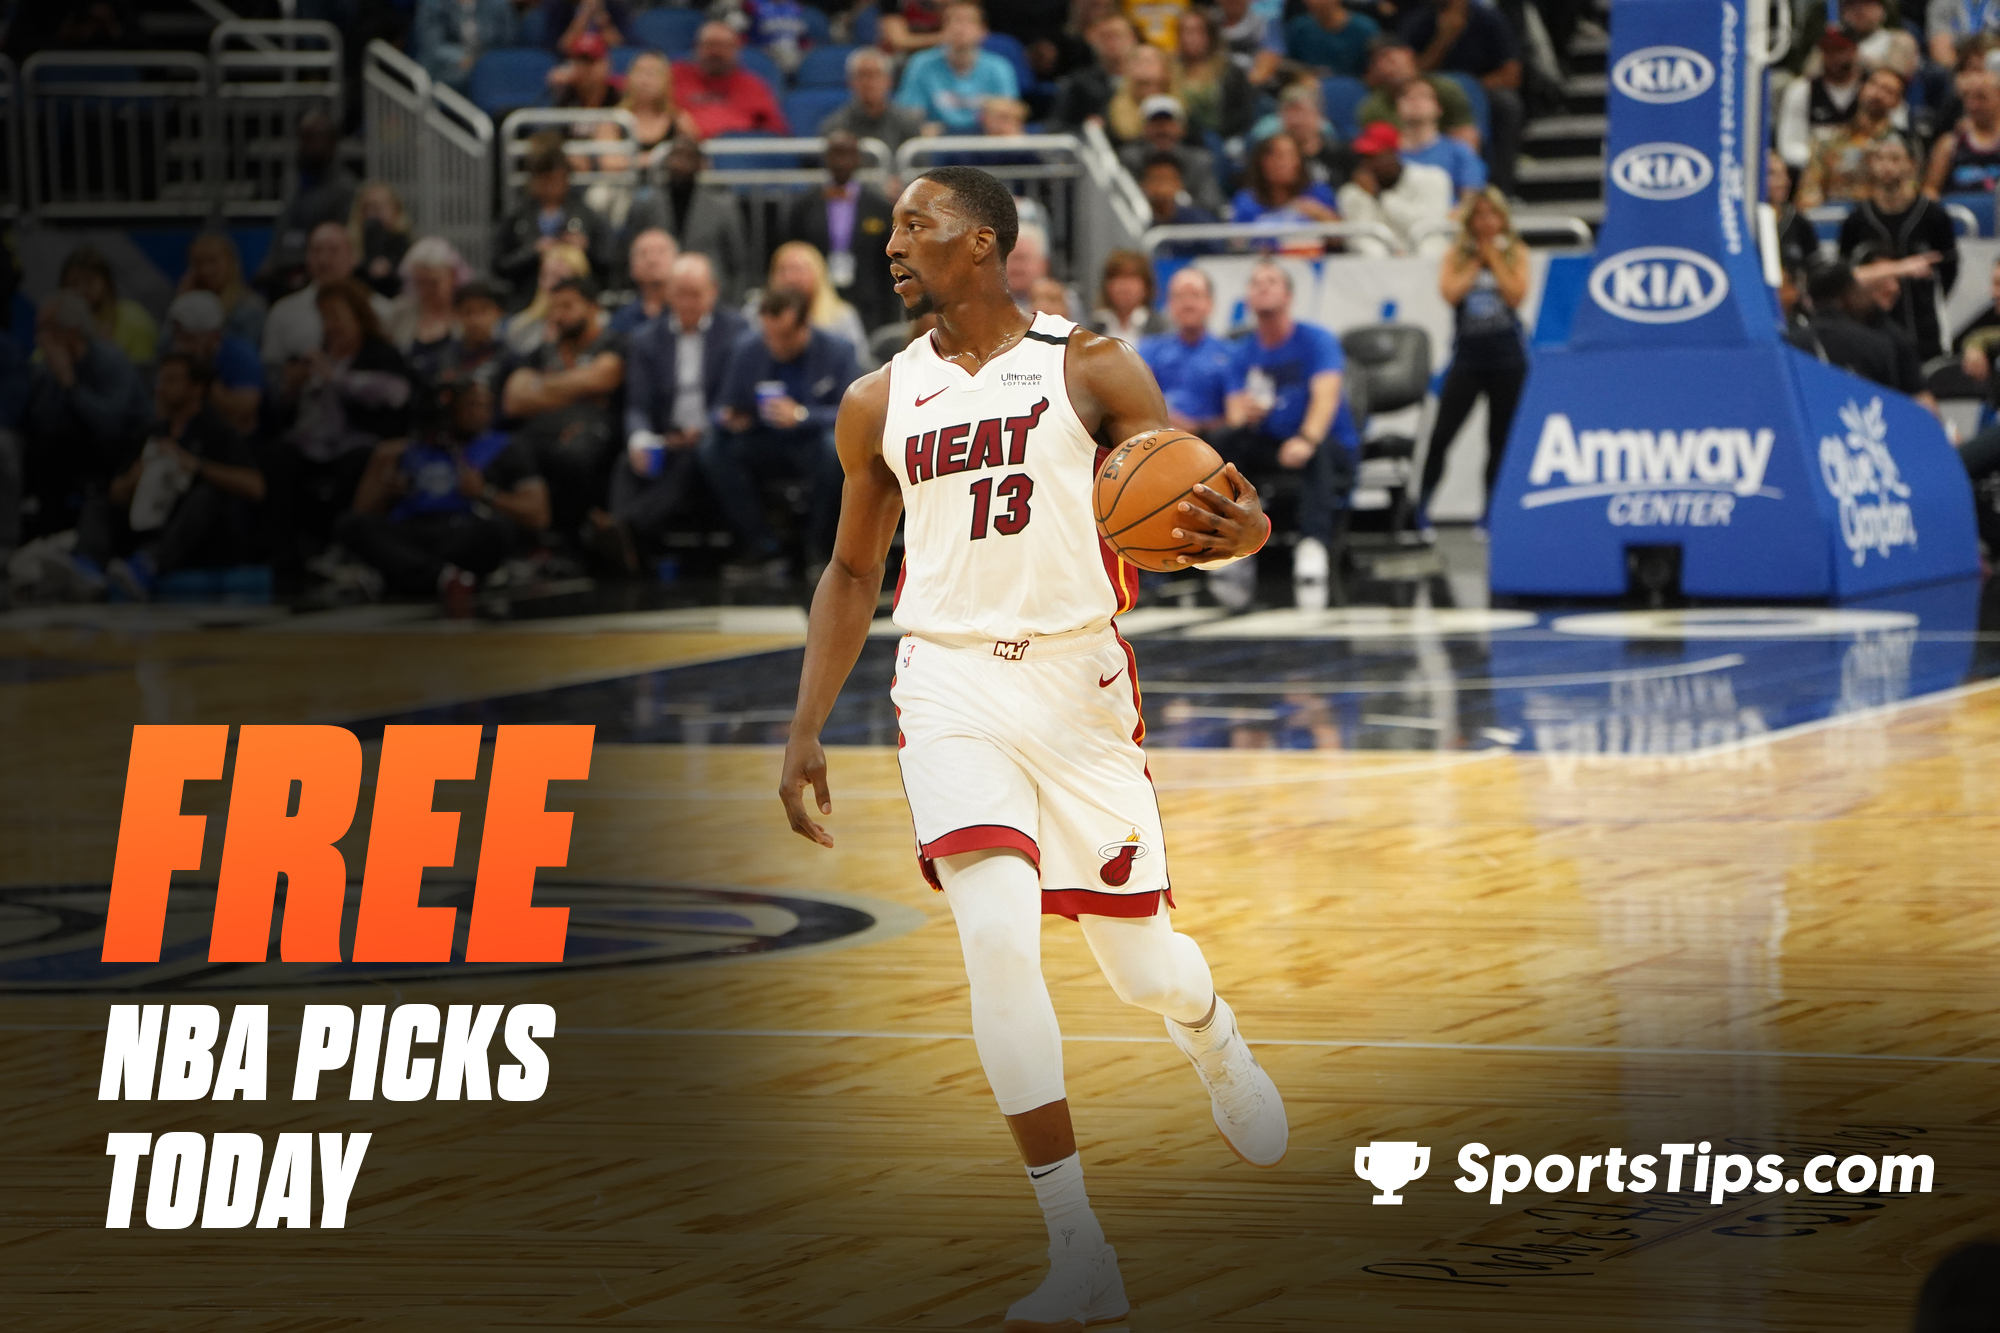 Free NBA Picks Today for Wednesday, January 20th, 2021